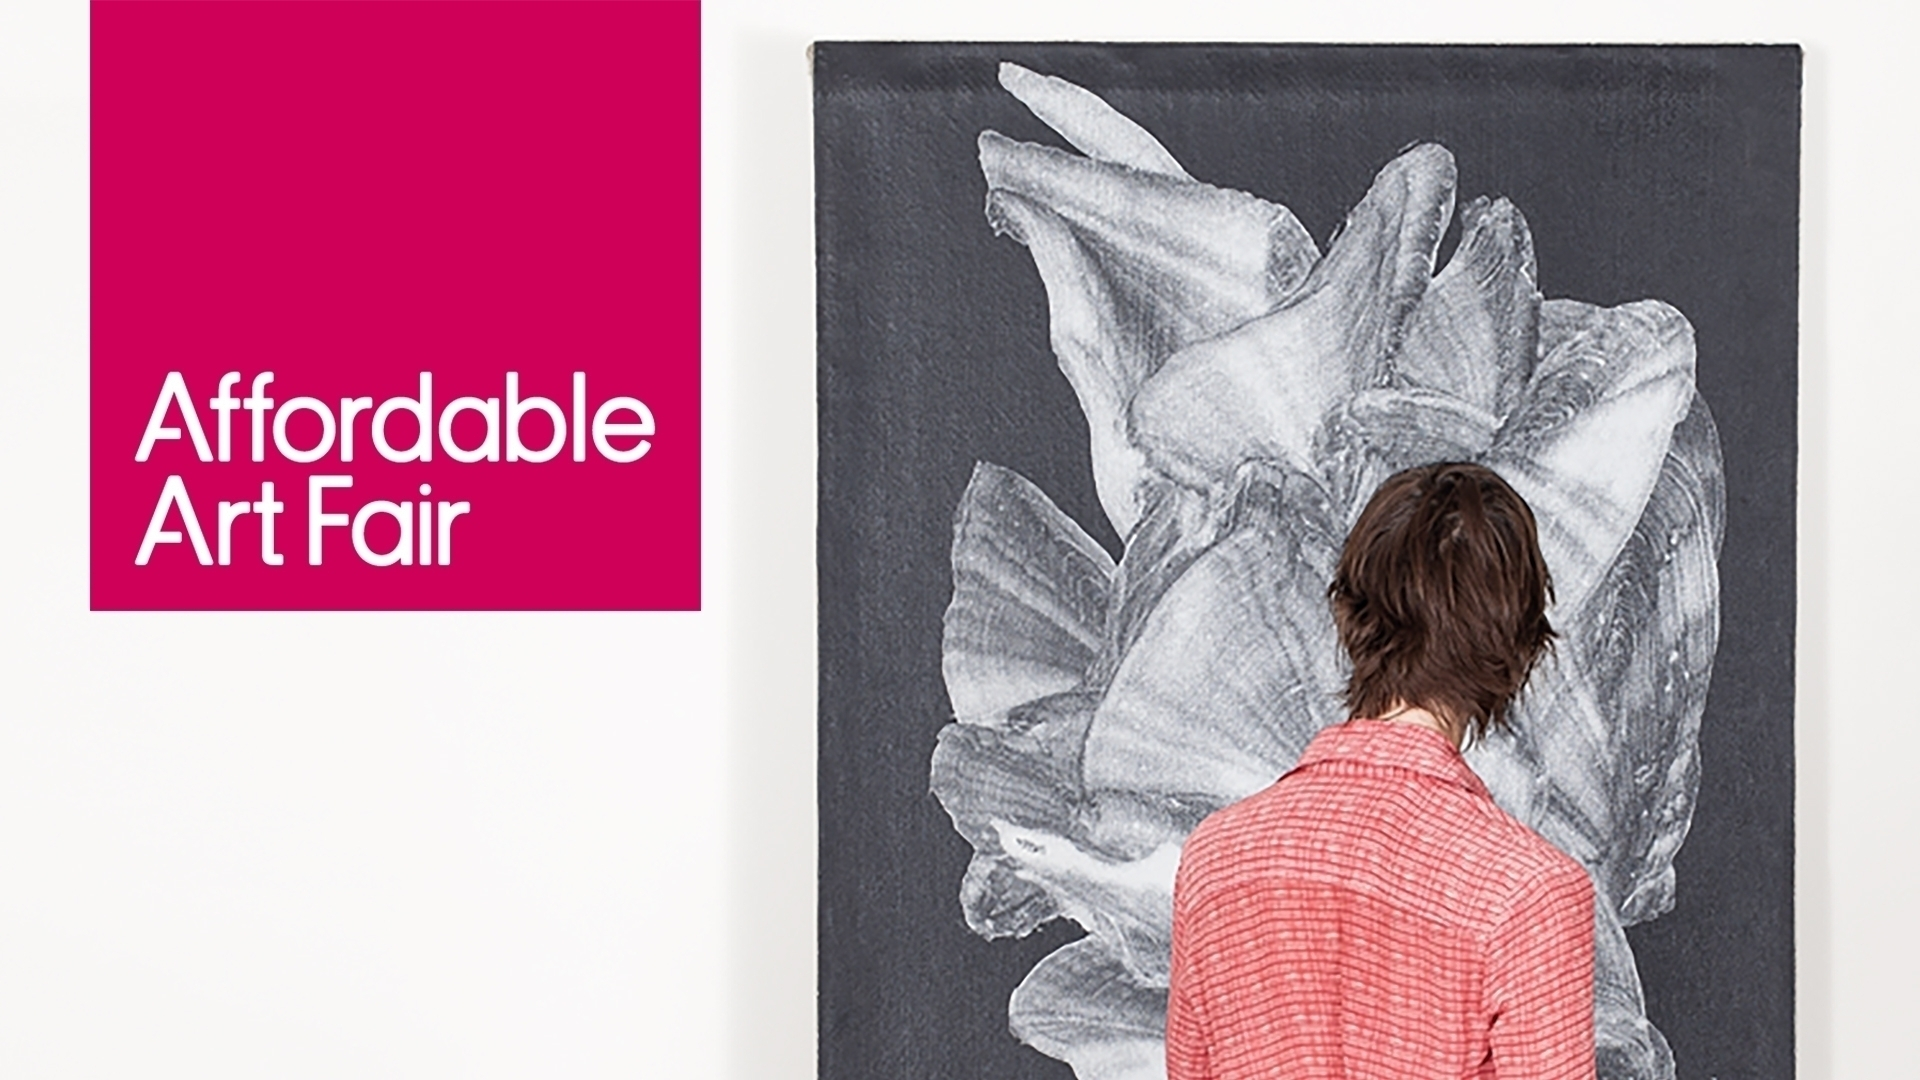 Keil auf der Affordable Art Fair: Hamburg, 15. - 18. November, Messe Hamburg